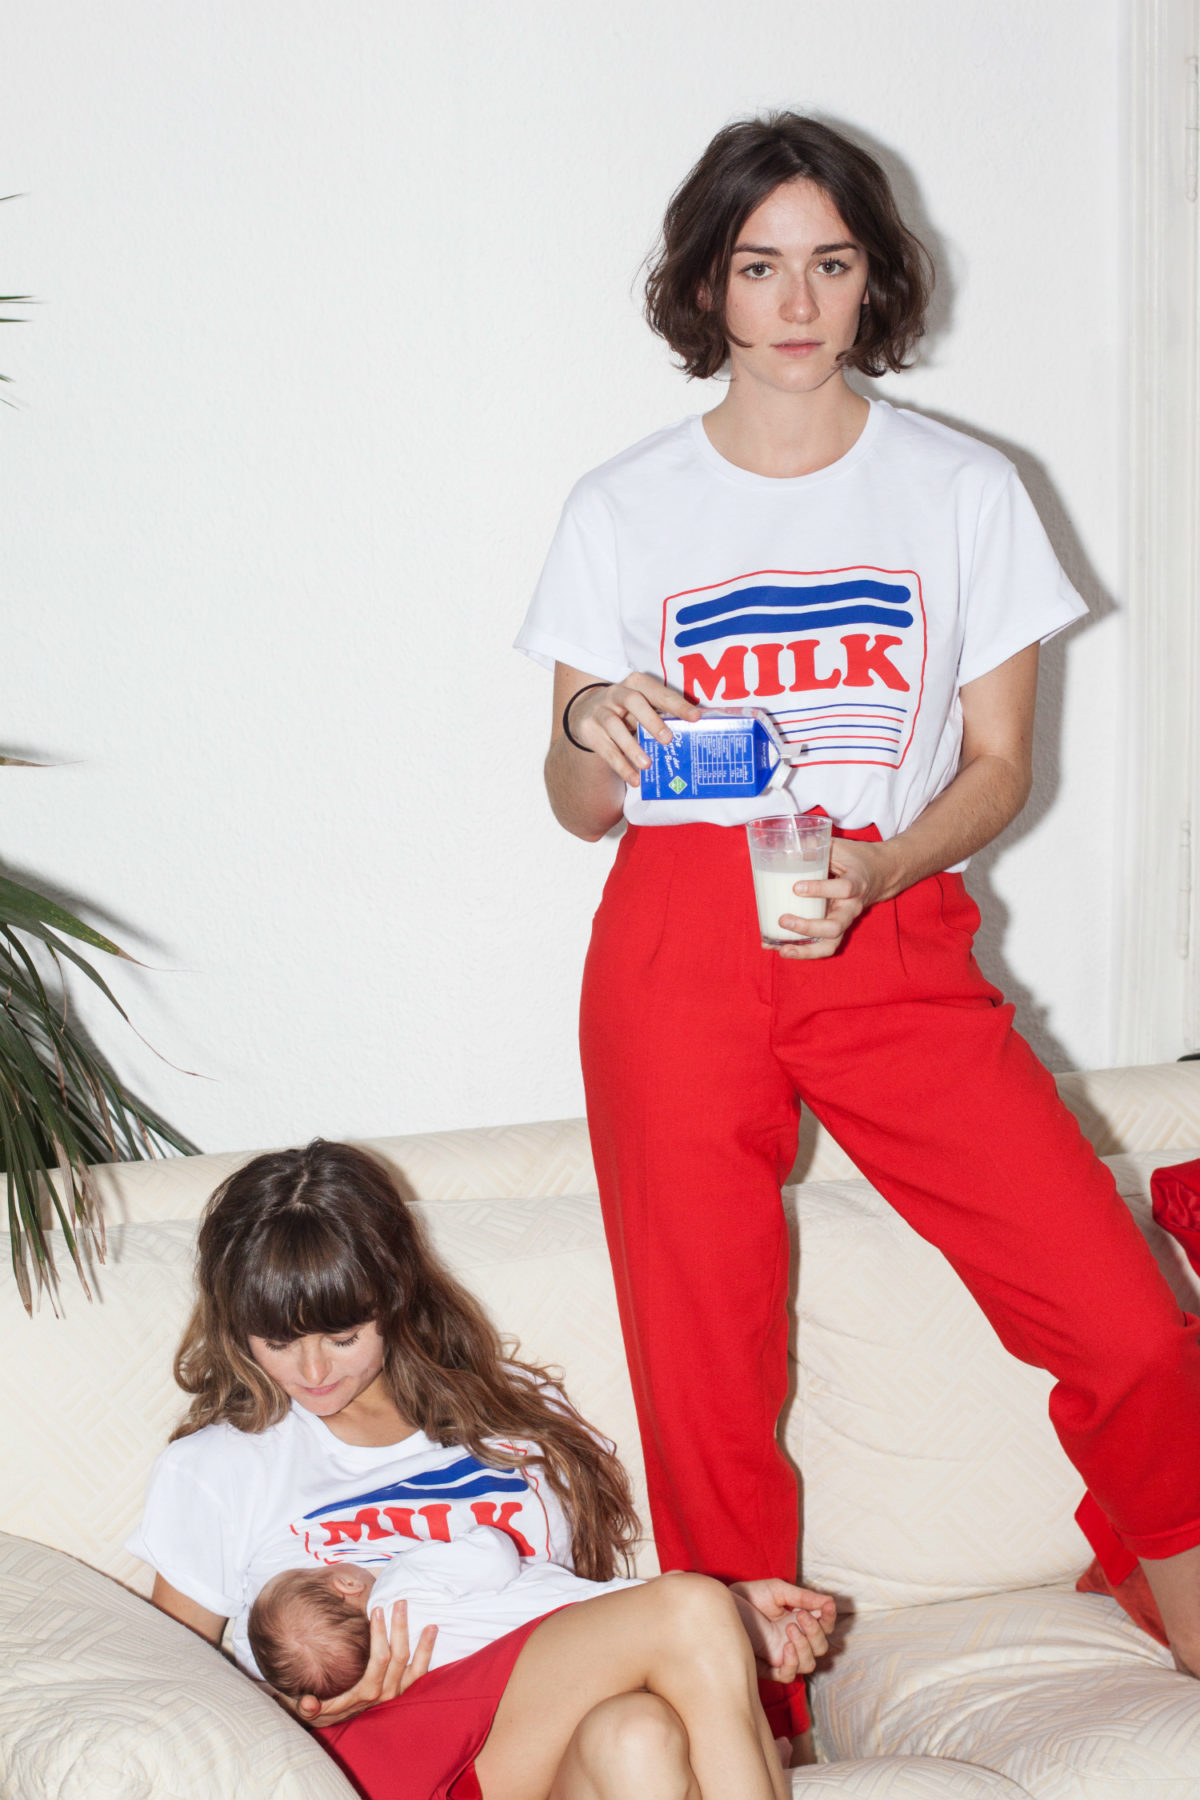 MEET WOMOM, THE BRAND REDEFINING PATRIARCHAL FASHION RULES AROUND MOTHERHOOD